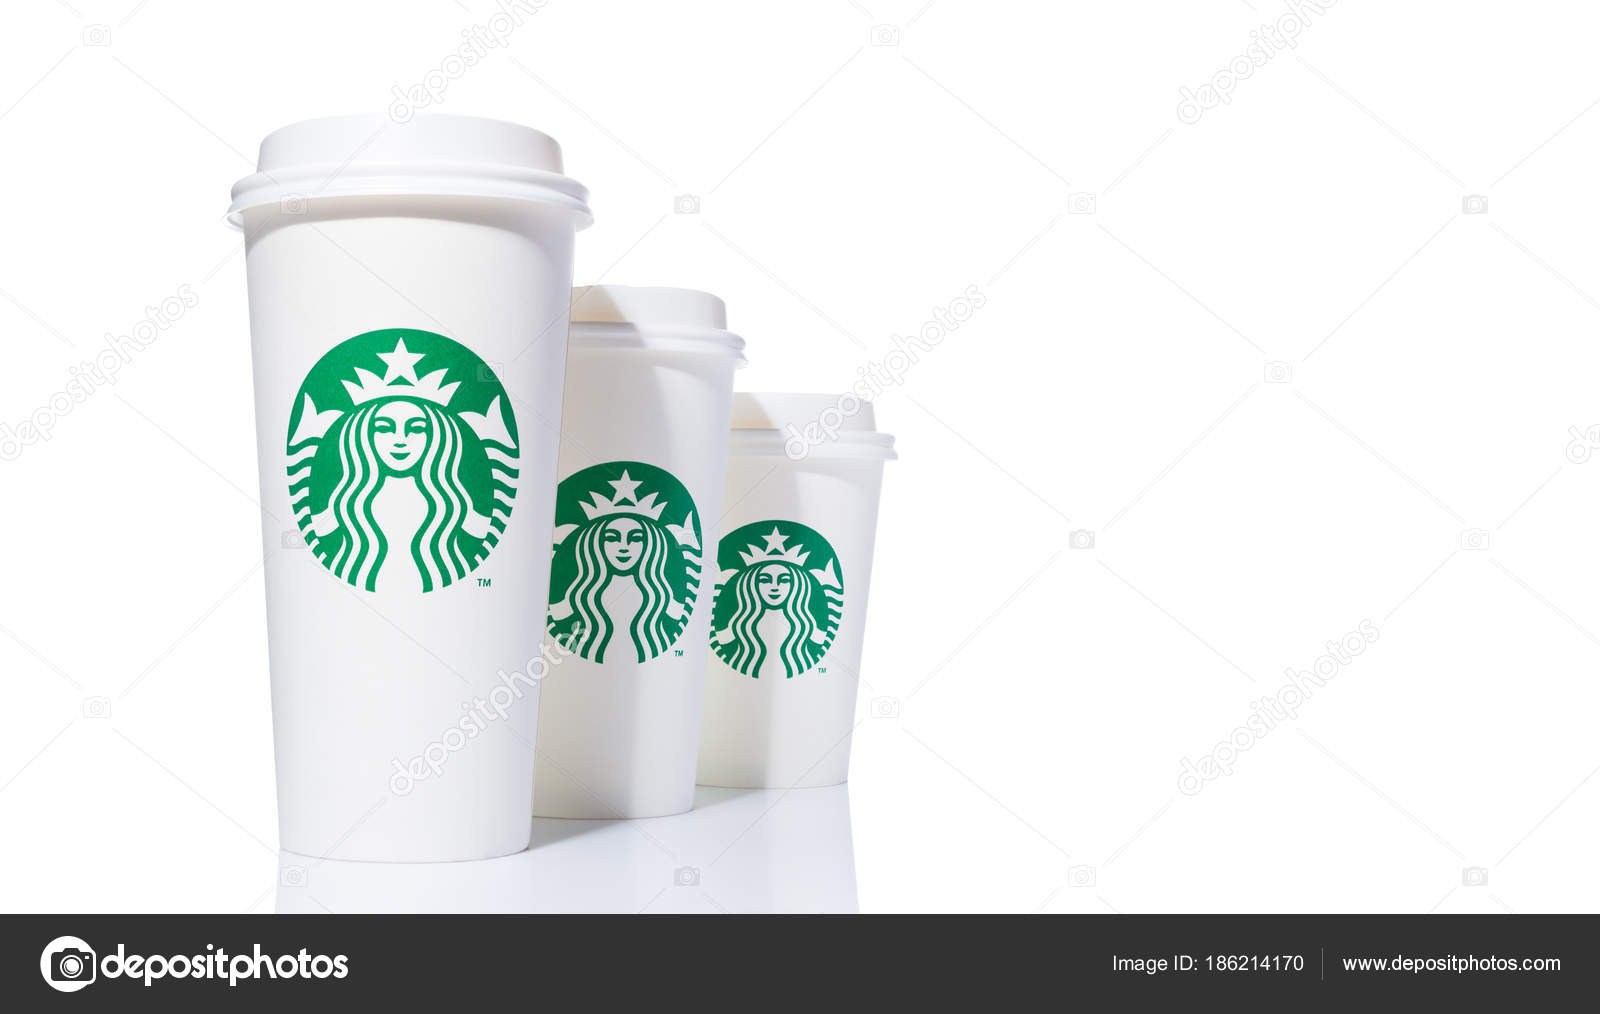 3 White Starbucks Paper Coffee Cups In 3 Sizes Tall Grande